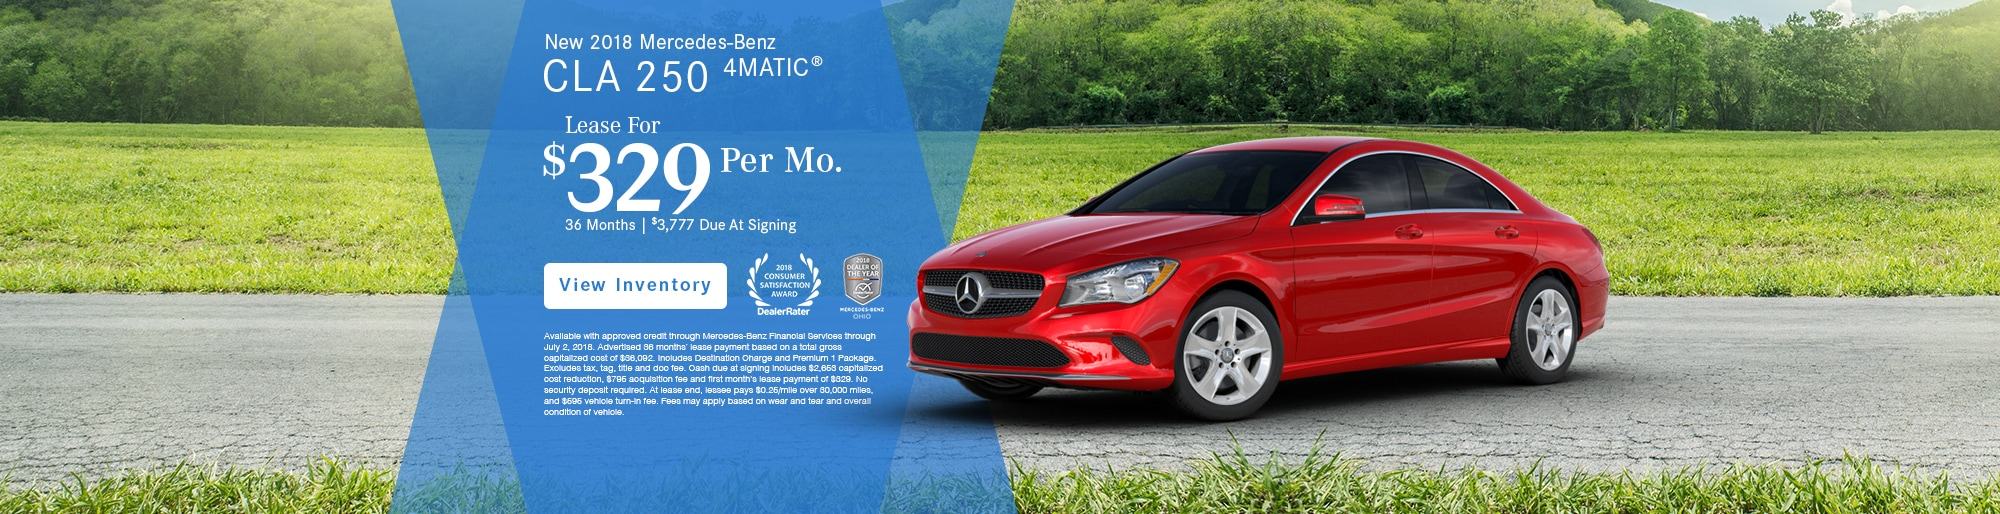 New & Used Mercedes in Dublin, OH | Crown Eurocars near ...